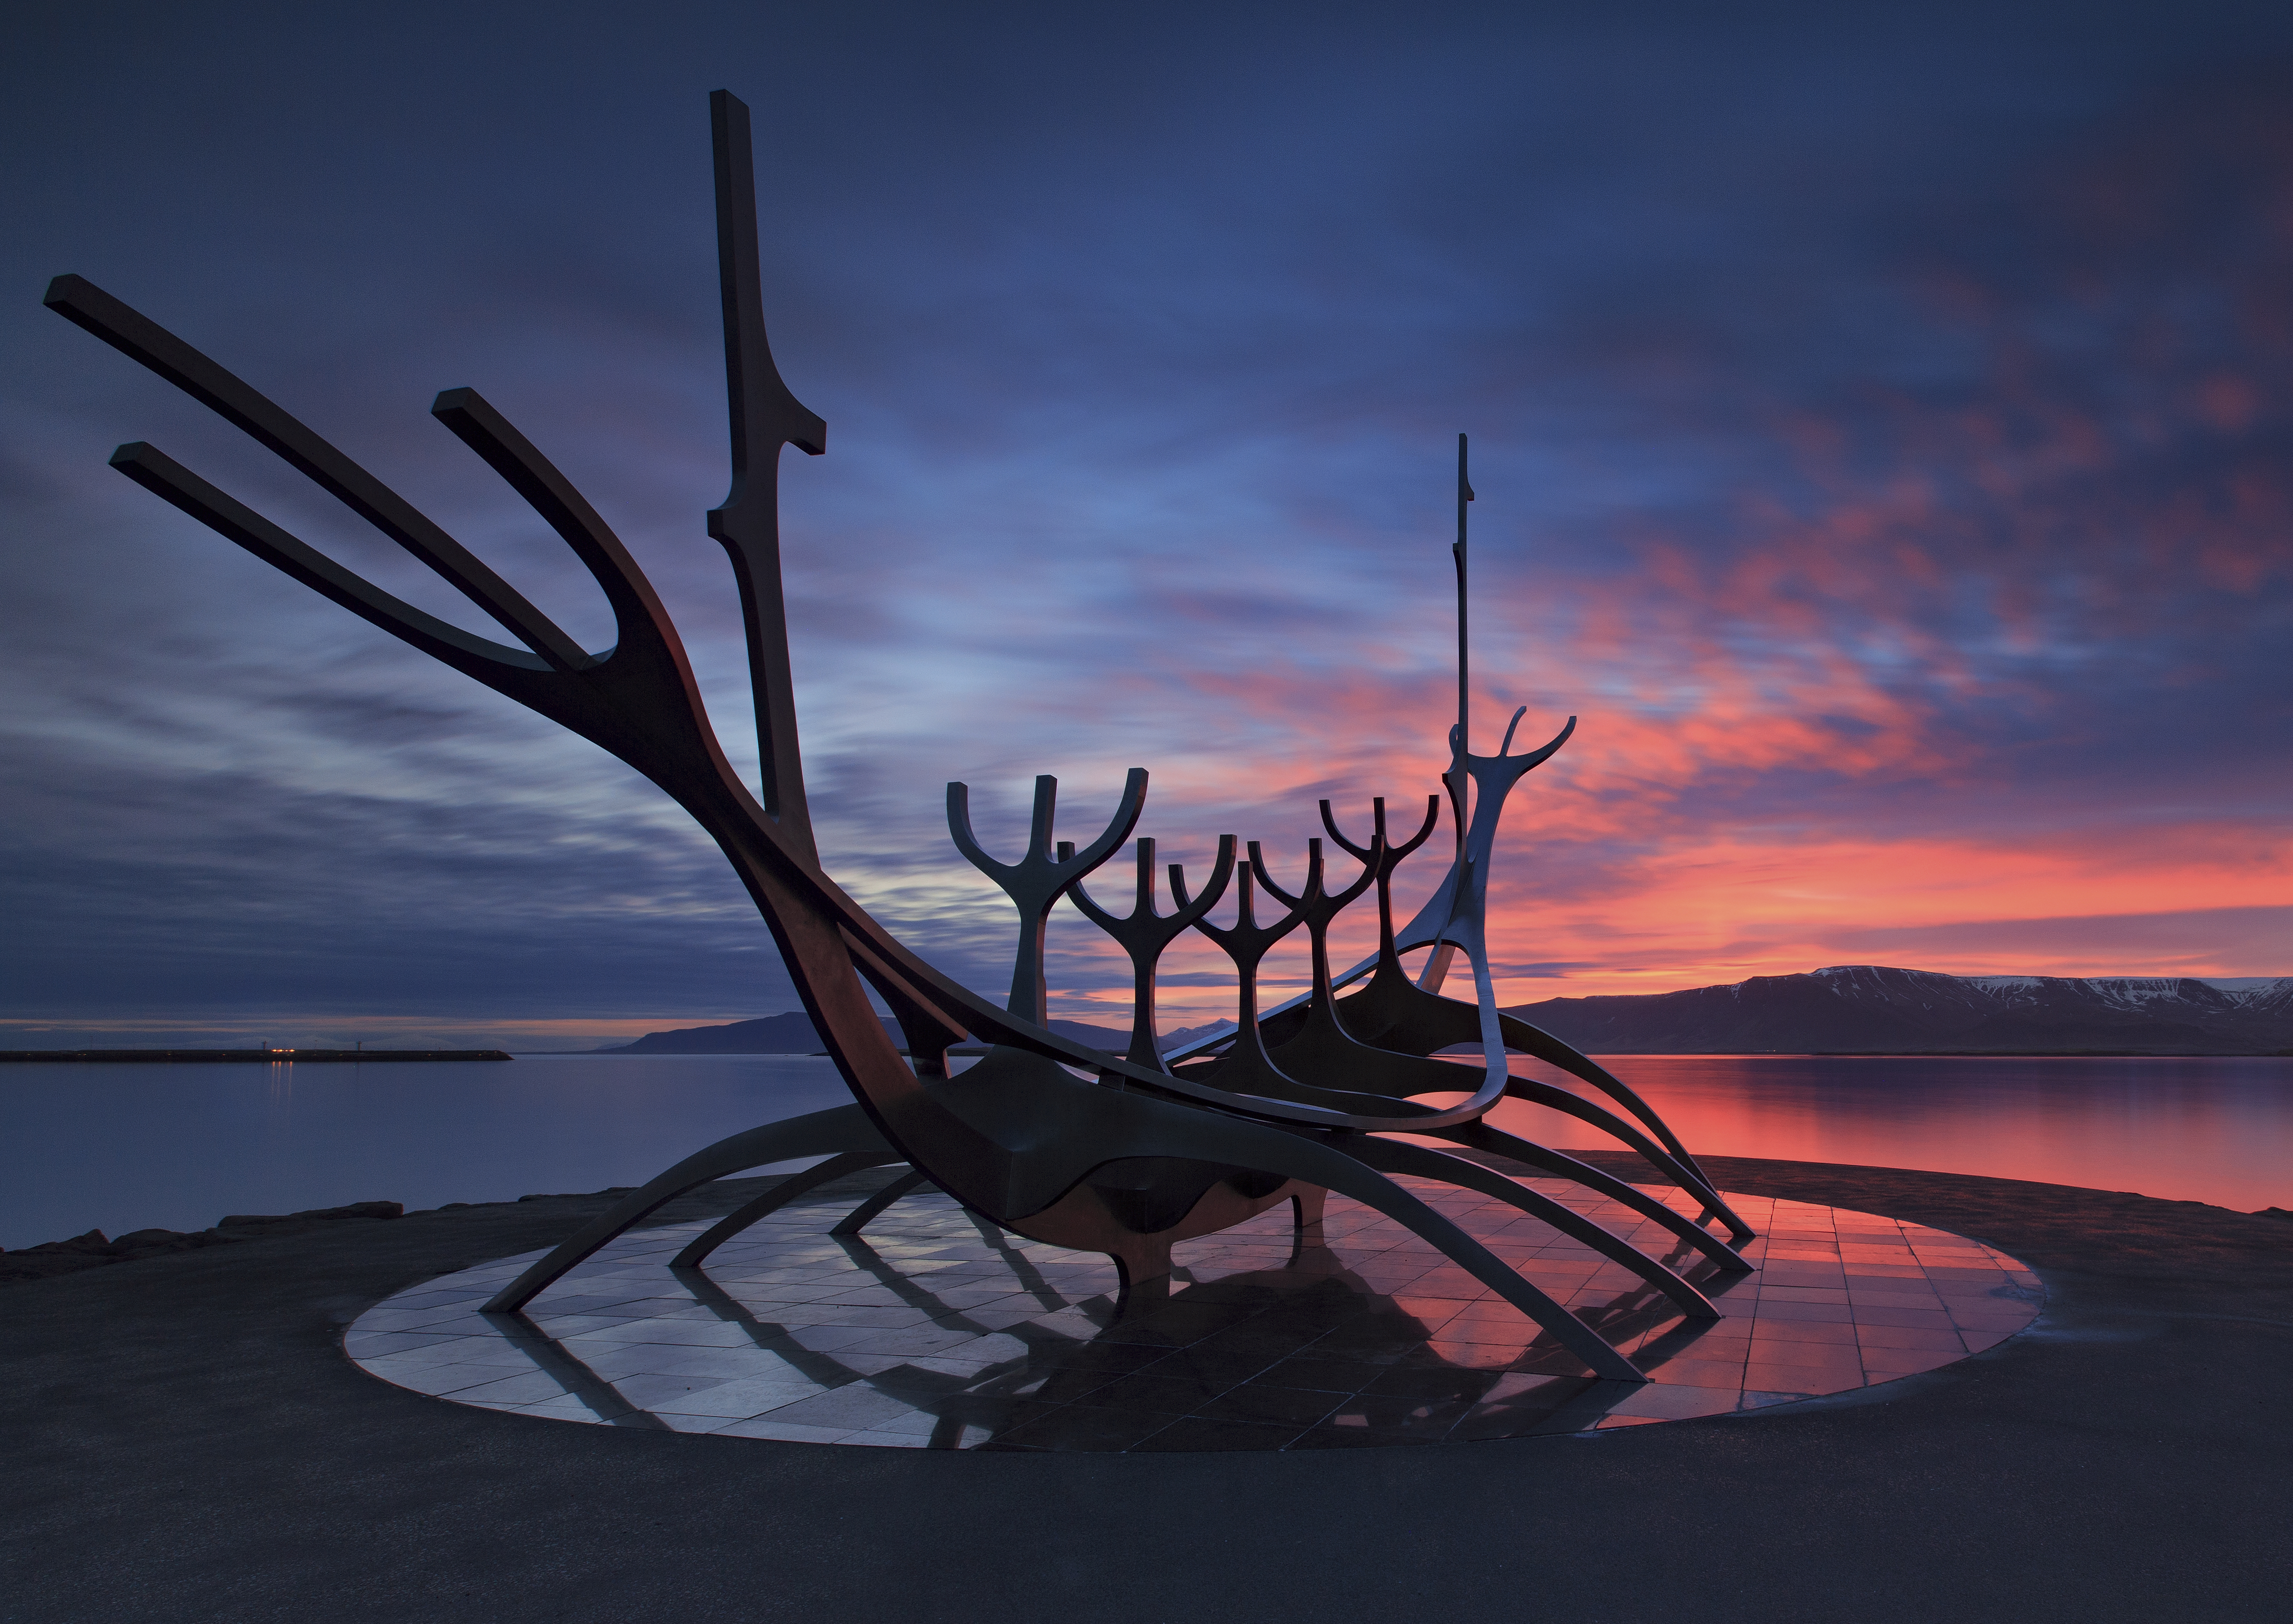 The Sun Voyager, located in Reykjavik